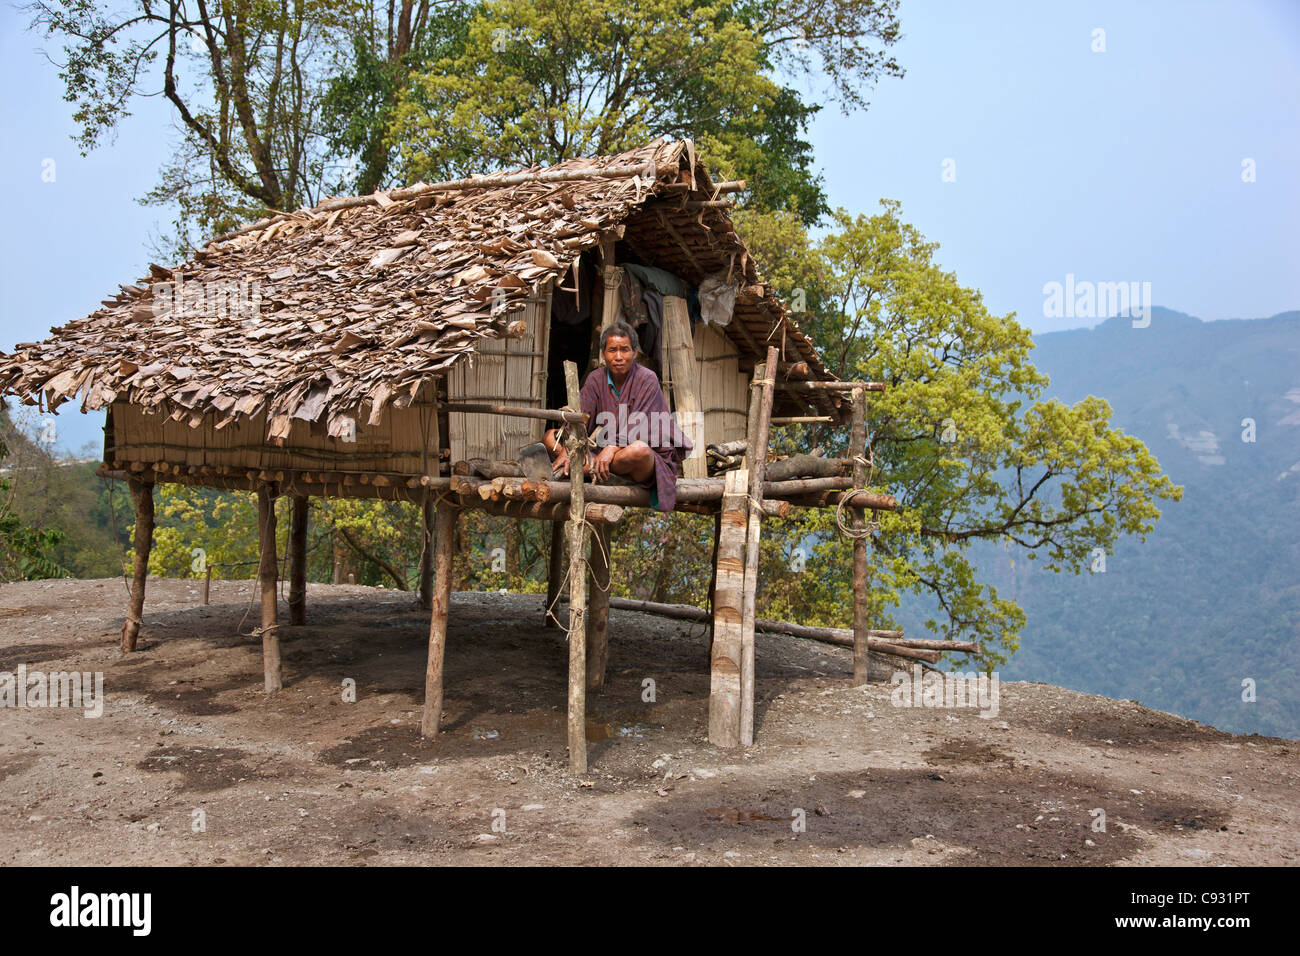 A man sits on the veranda of his small house, raised on stilts, situated precariously on the edge of a steep drop - Stock Image